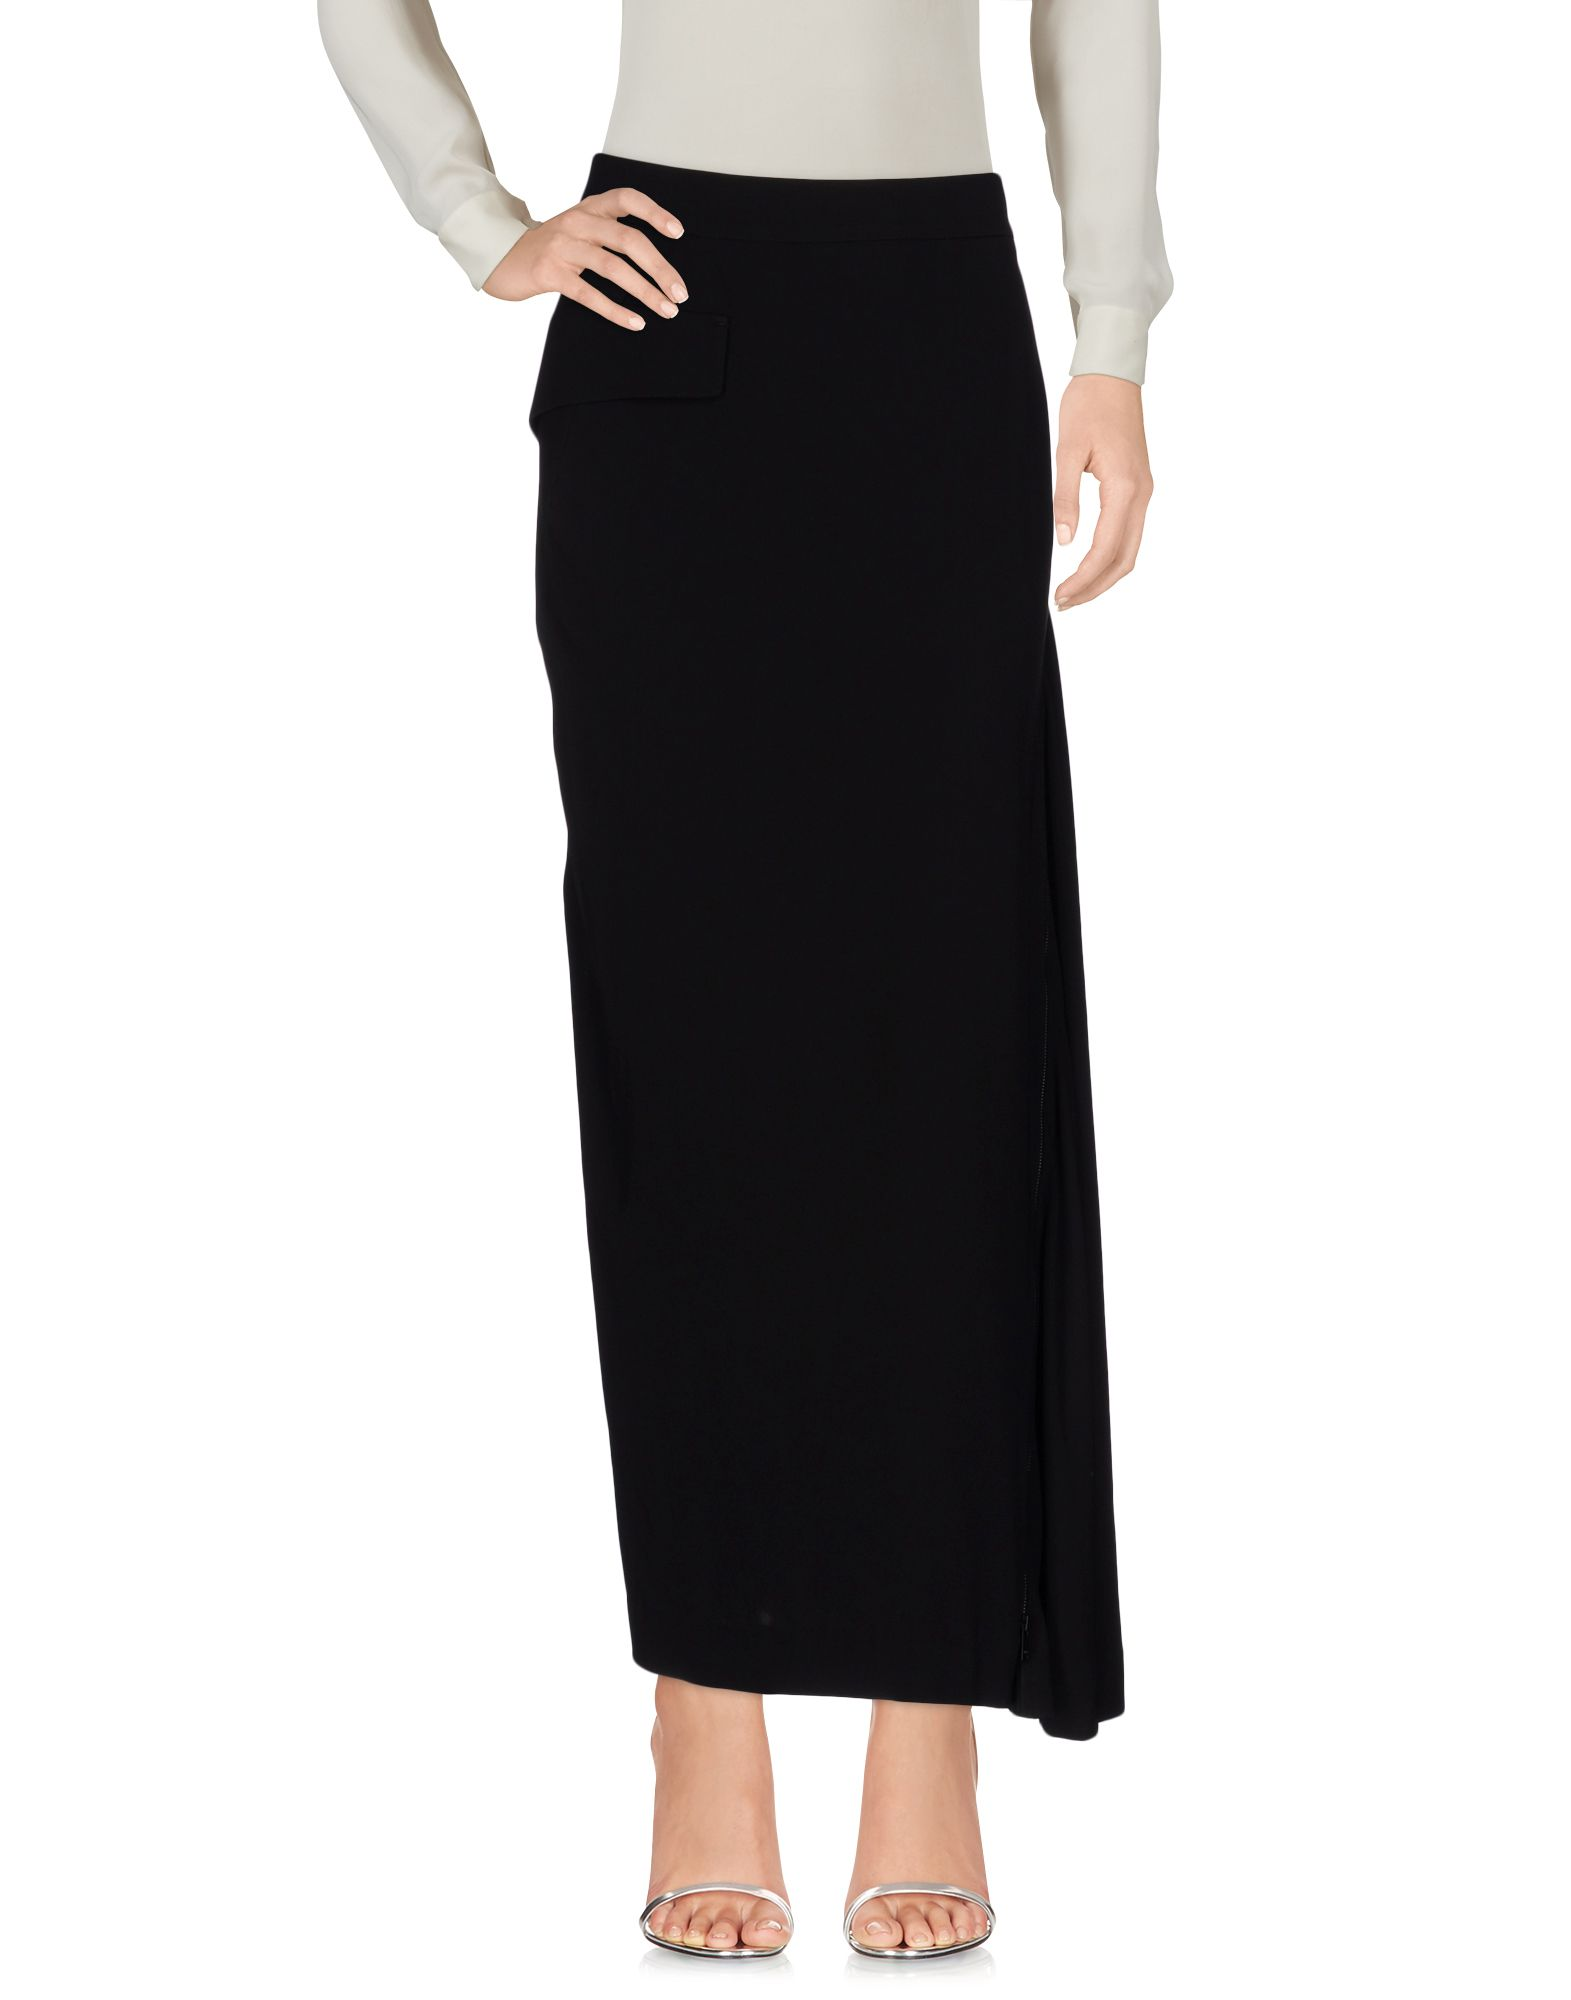 Maxi Skirts in Black